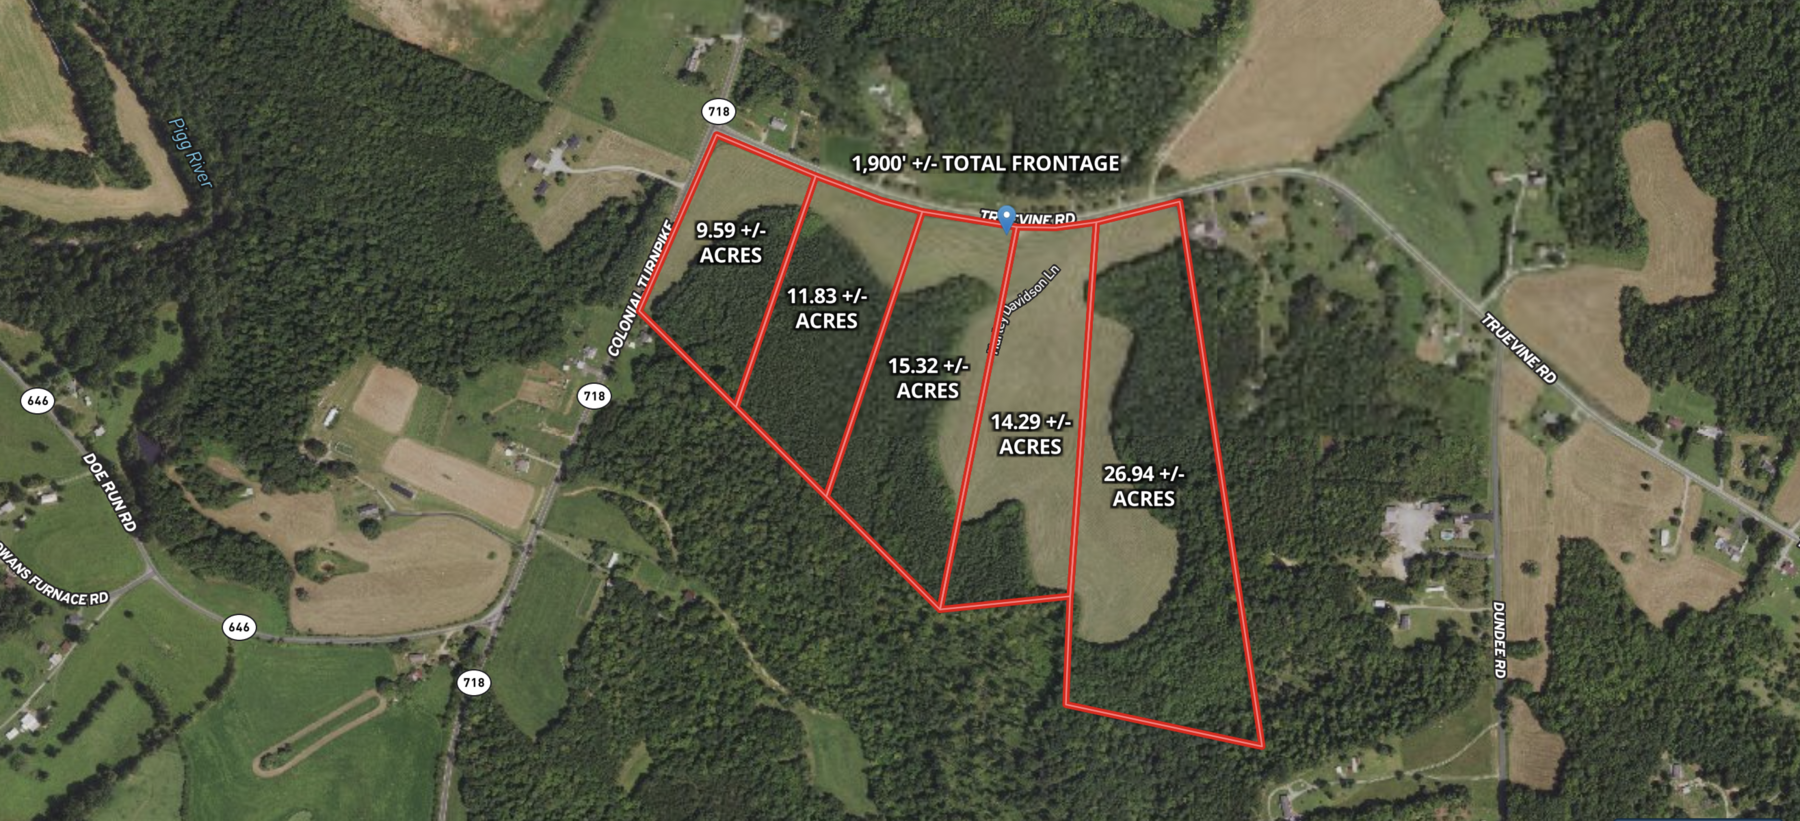 Image for Parcel 5 (26.94+/- acres) of 5 Individual Land Parcels Totaling 77.9 +/- Acres in Franklin County, VA, Only 10 Miles from Smith Mountain Lake--ONLINE ONLY BIDDING!!